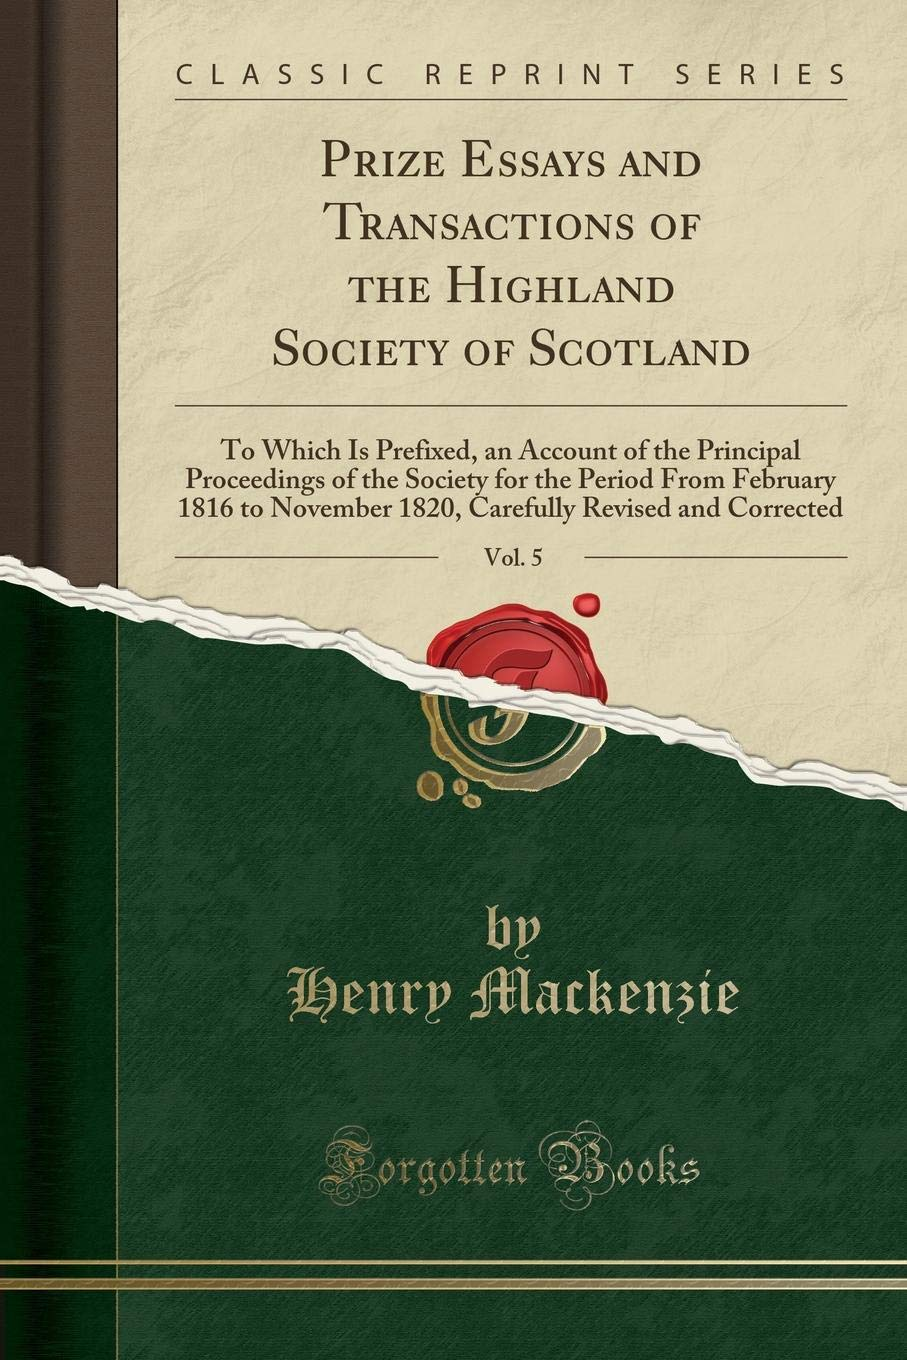 Prize Essays and Transactions of the Highland Society of Scotland, Vol. 5: To Which Is Prefixed, an Account of the Principal Proceedings of the ... Revised and Corrected (Classic Reprint) PDF